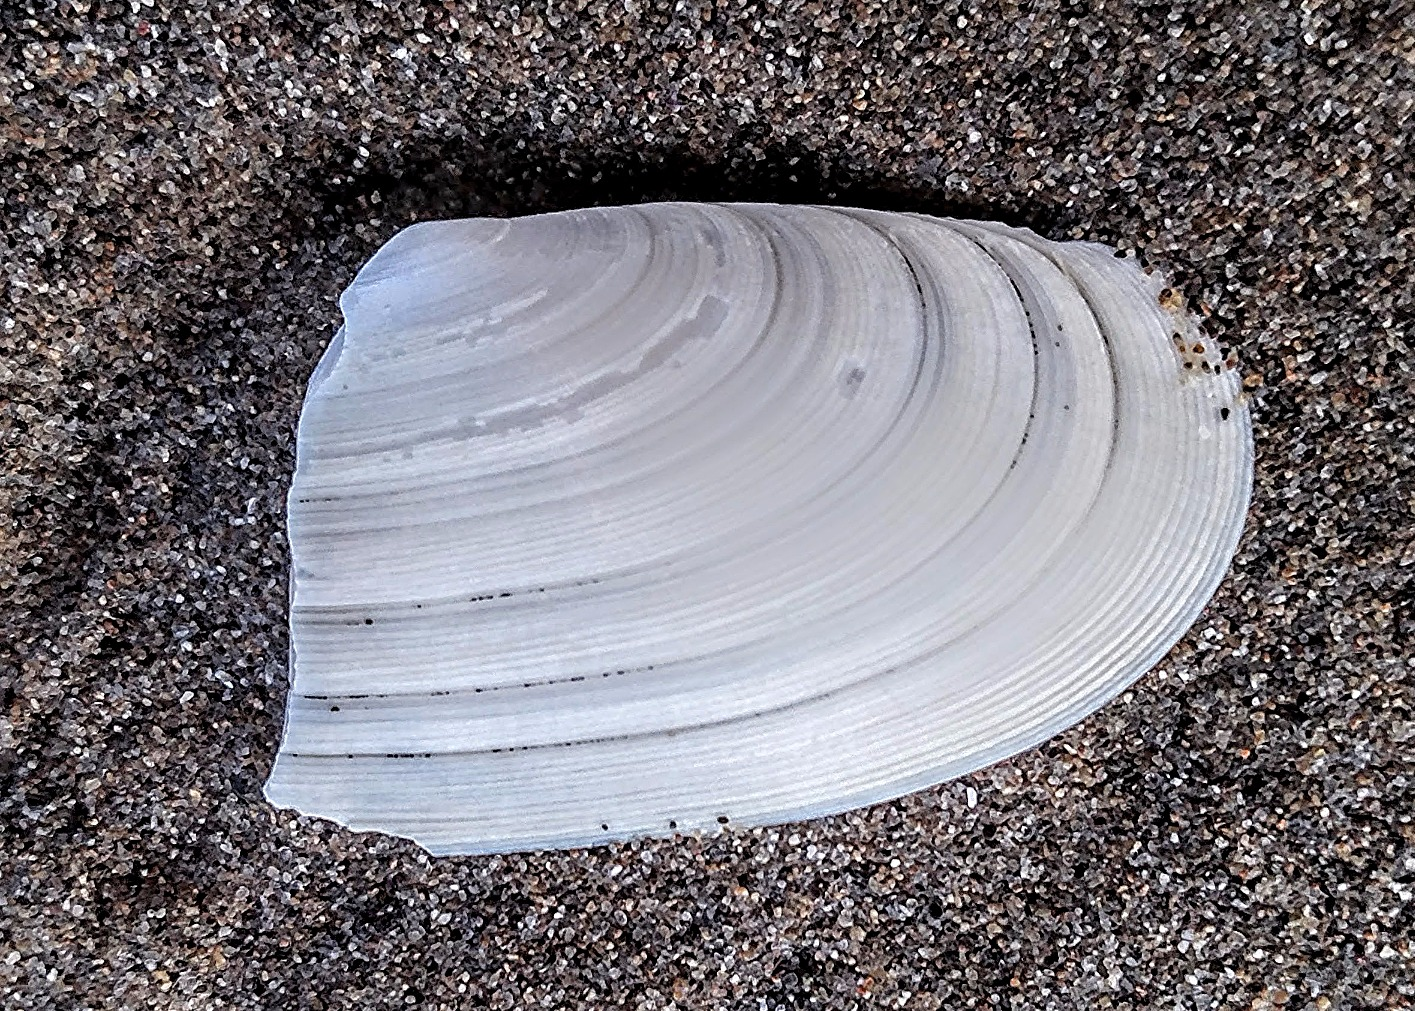 Clamshell